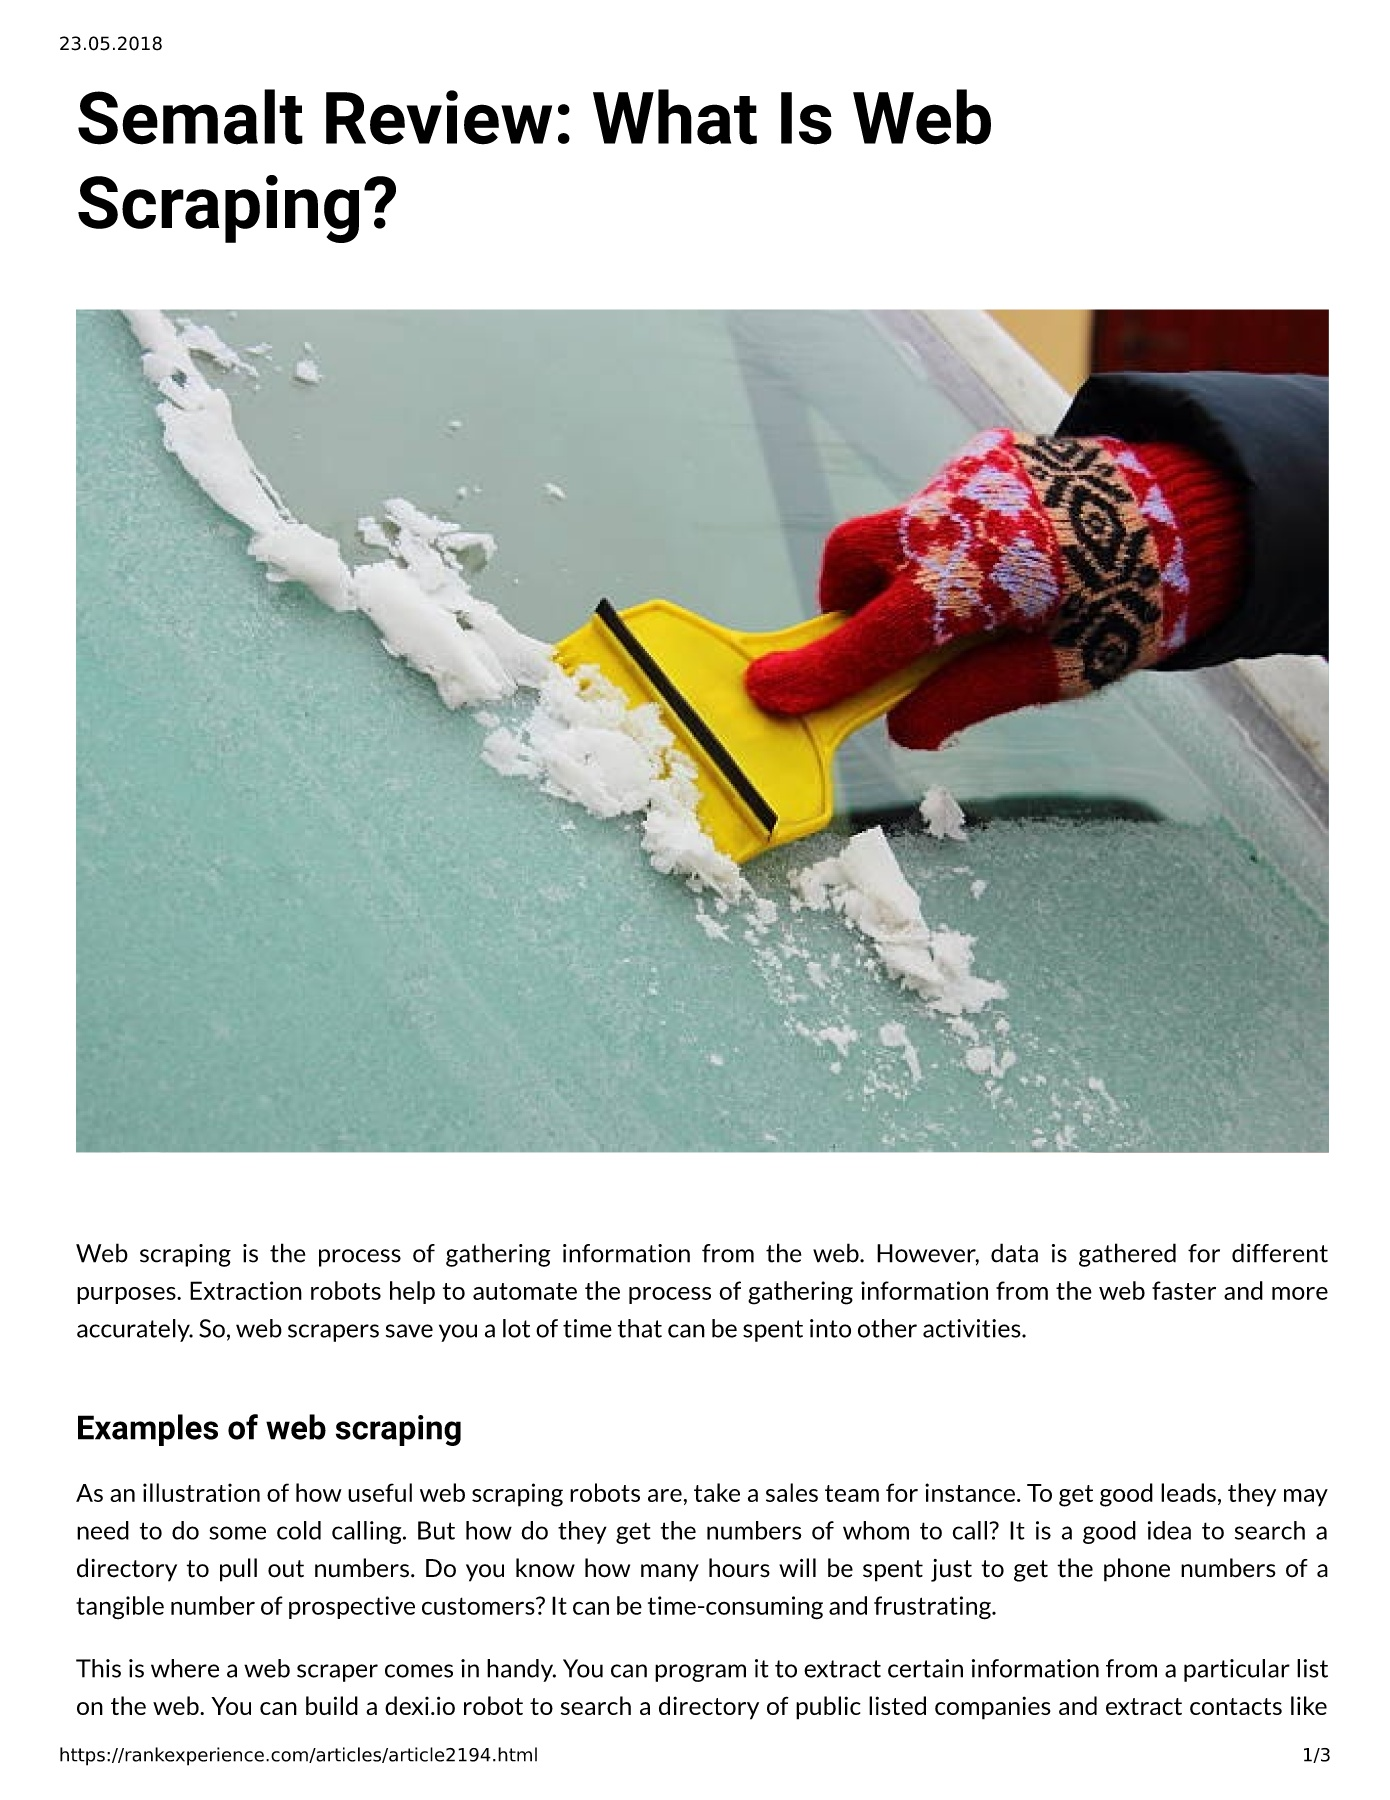 Semalt Review: What Is Web Scraping? Pages 1 - 3 - Text